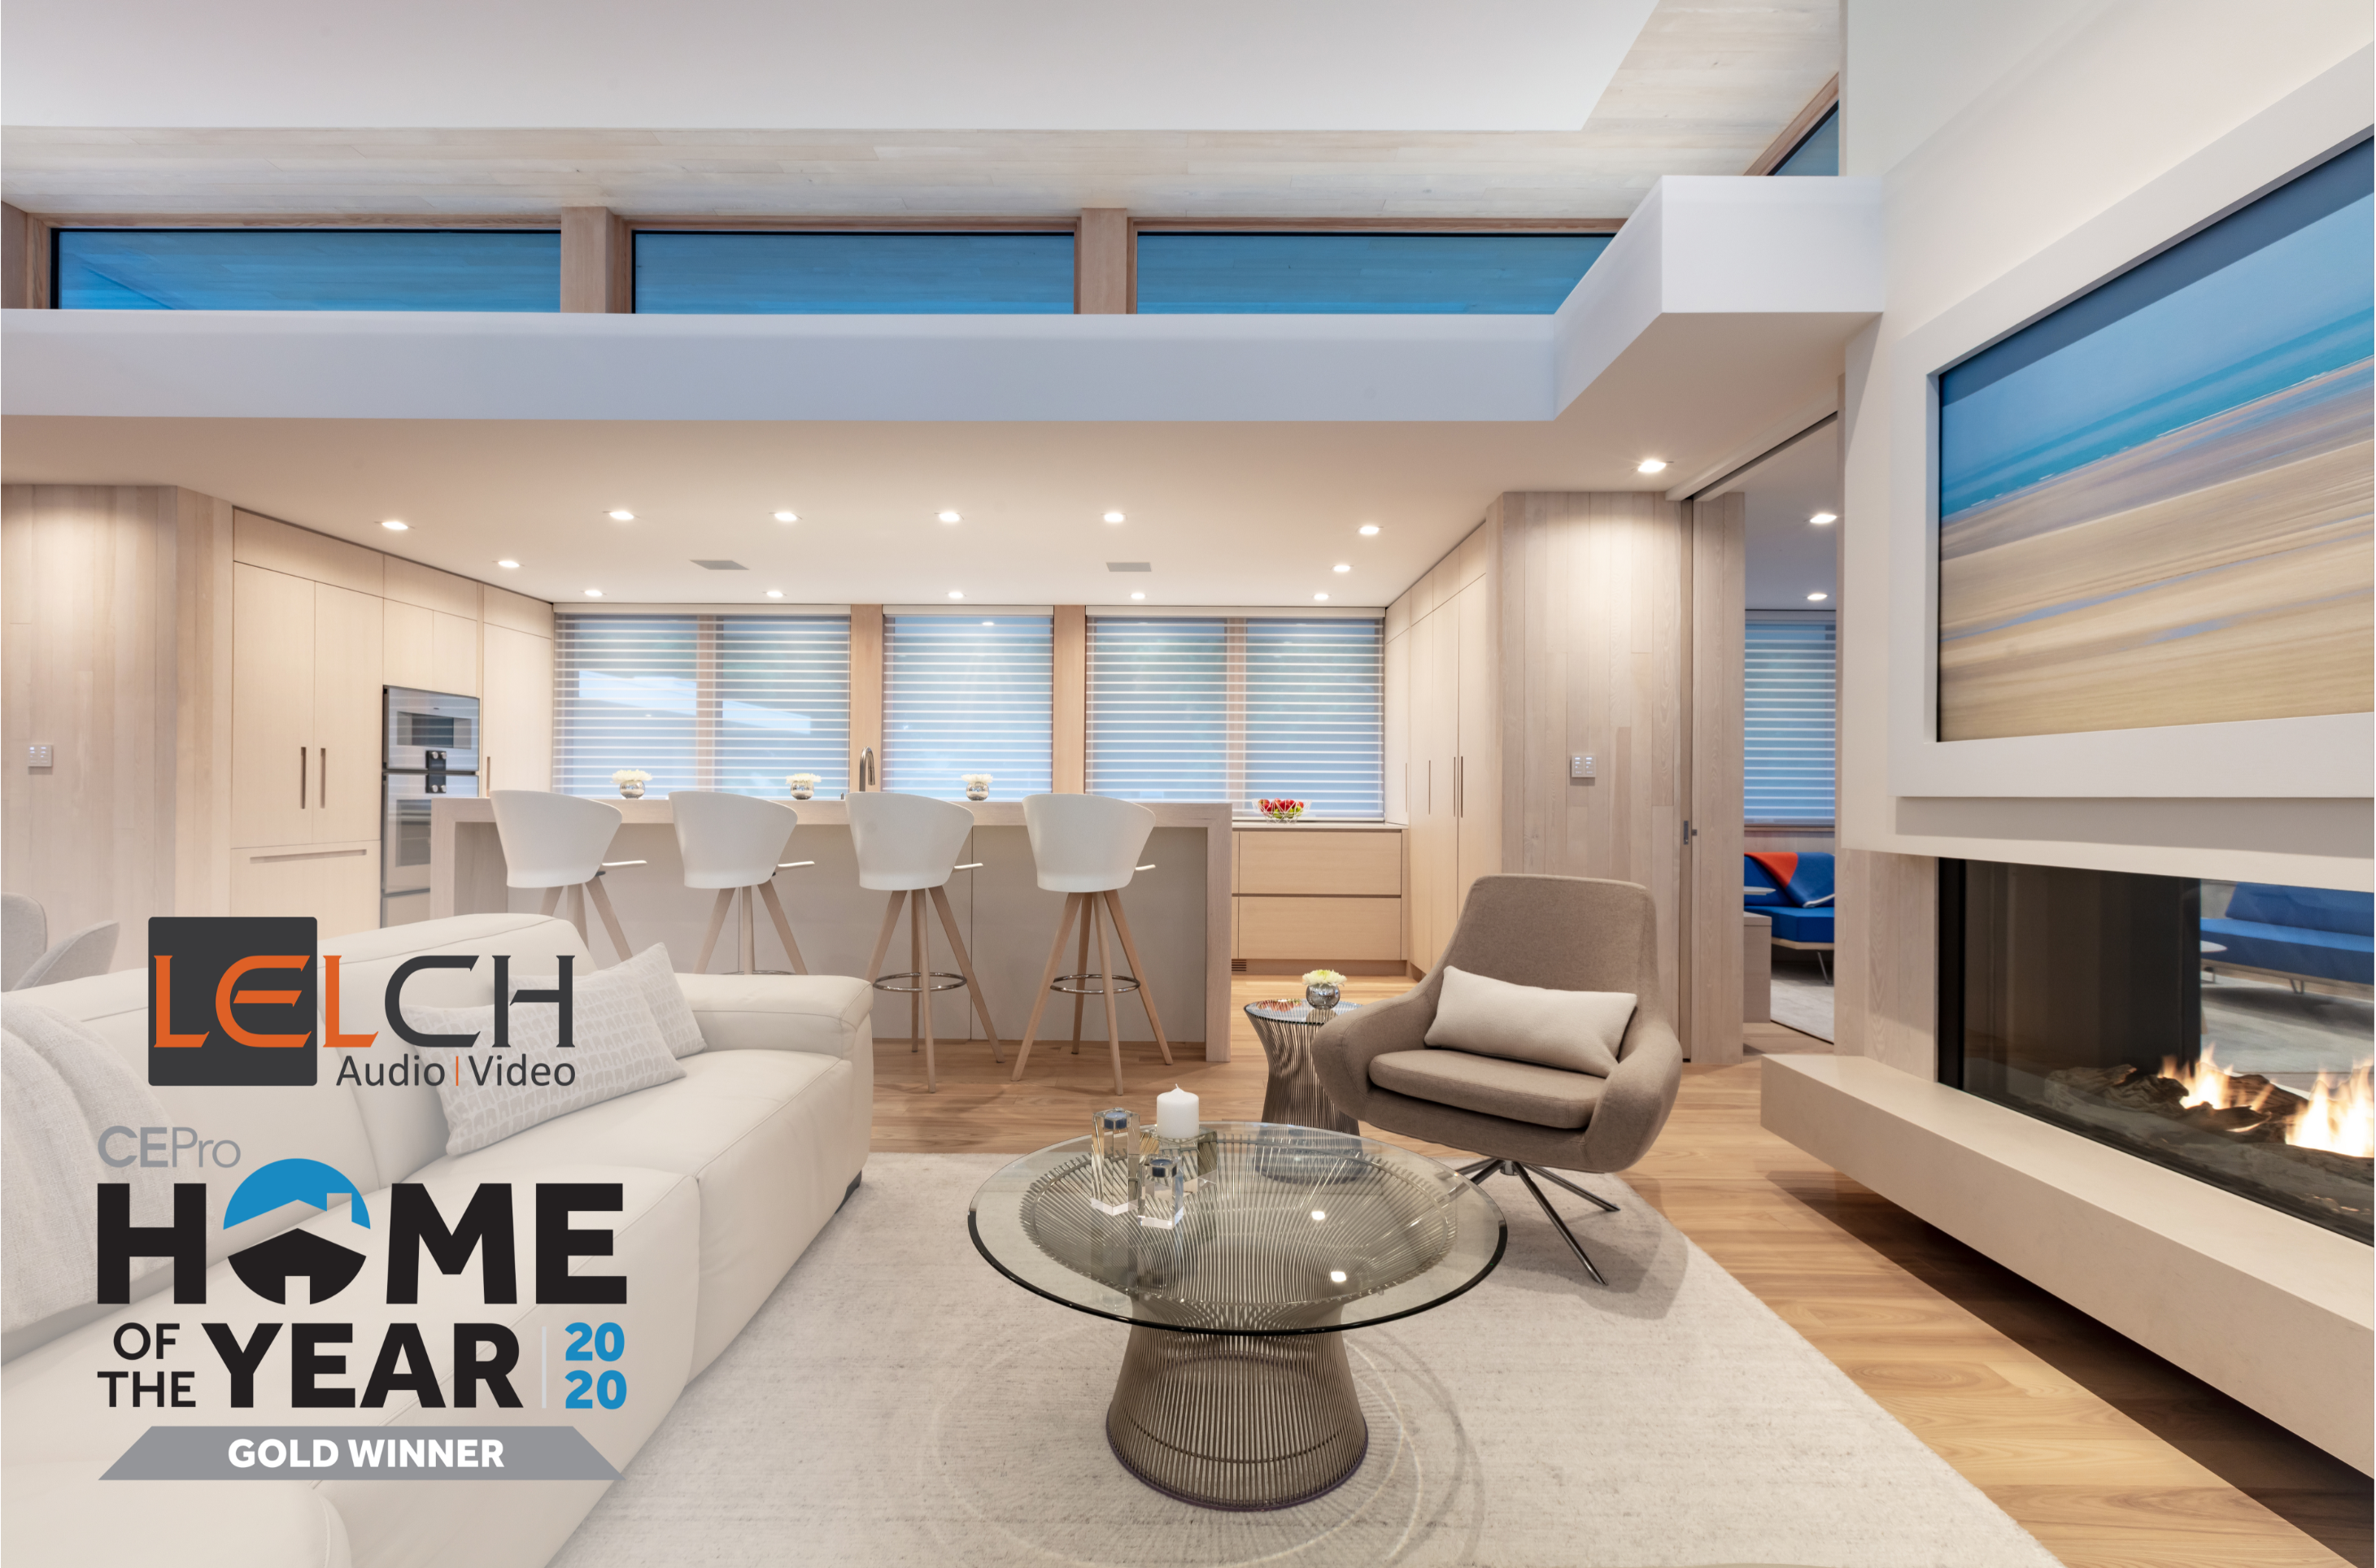 Lelch Audio Video Is a 2020 CE Pro Home of the Year Award Winner